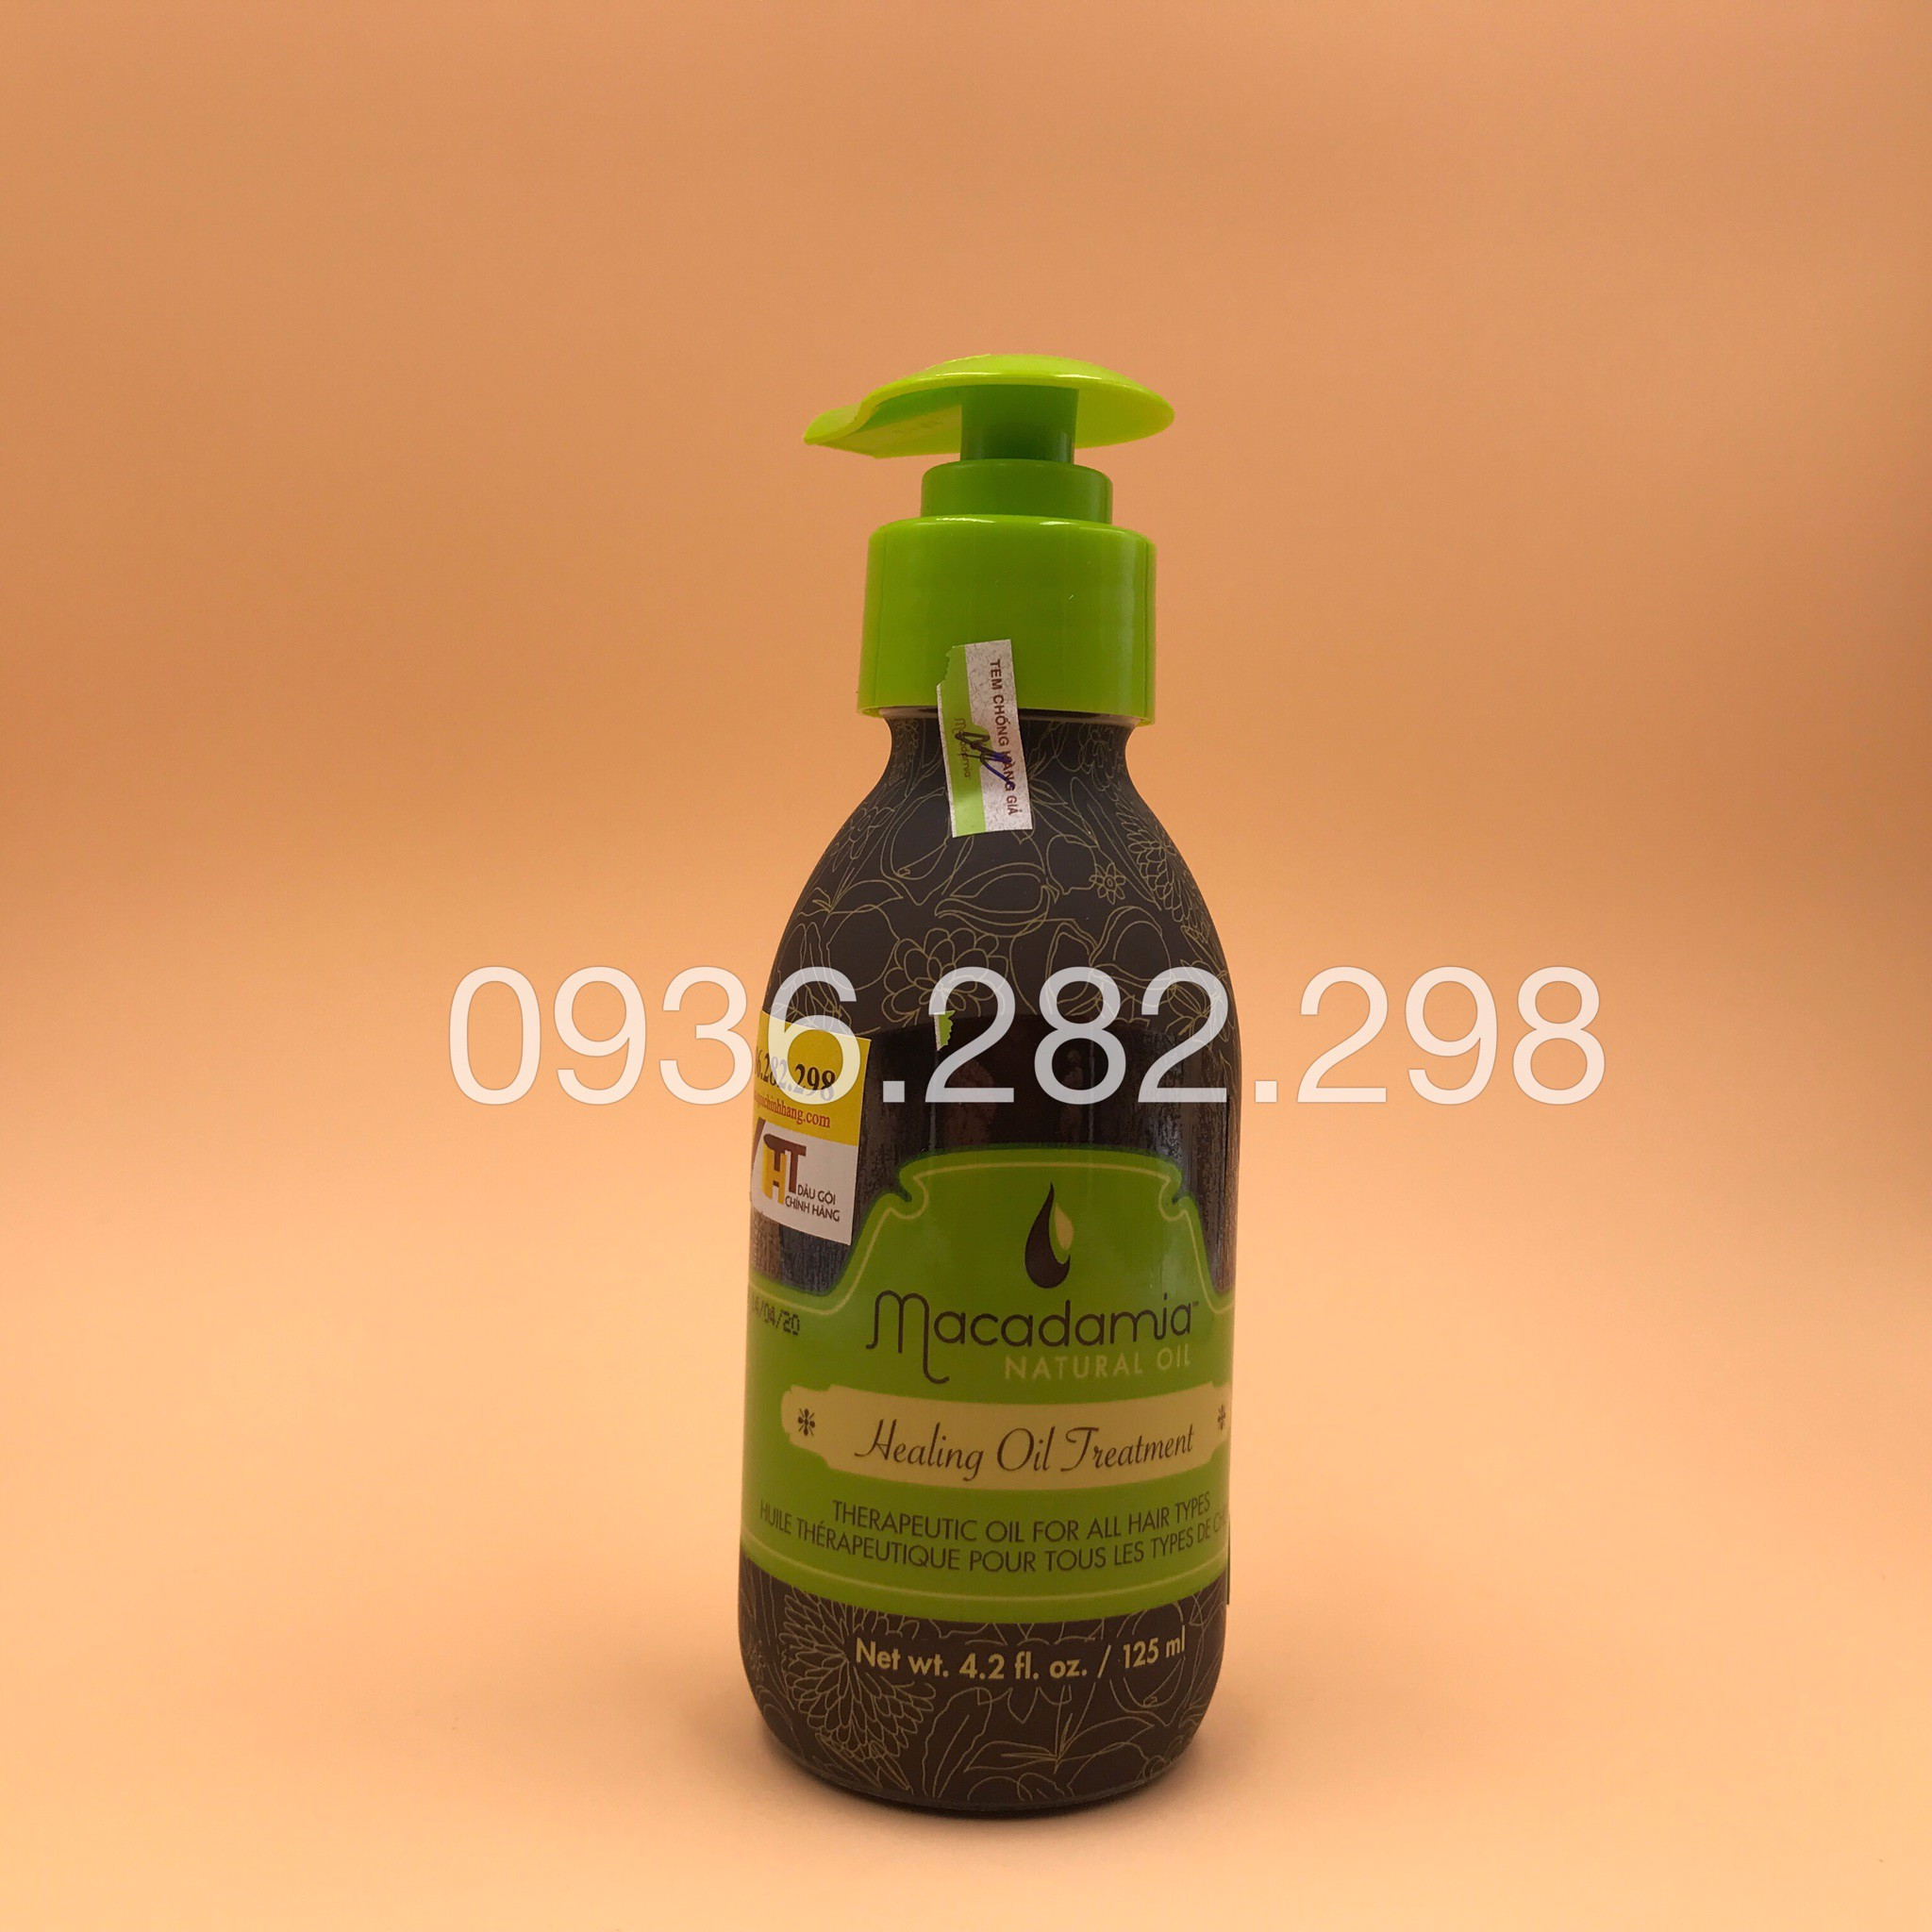 Tinh Dầu Macadamia 125ml - Healing Oil Treatment